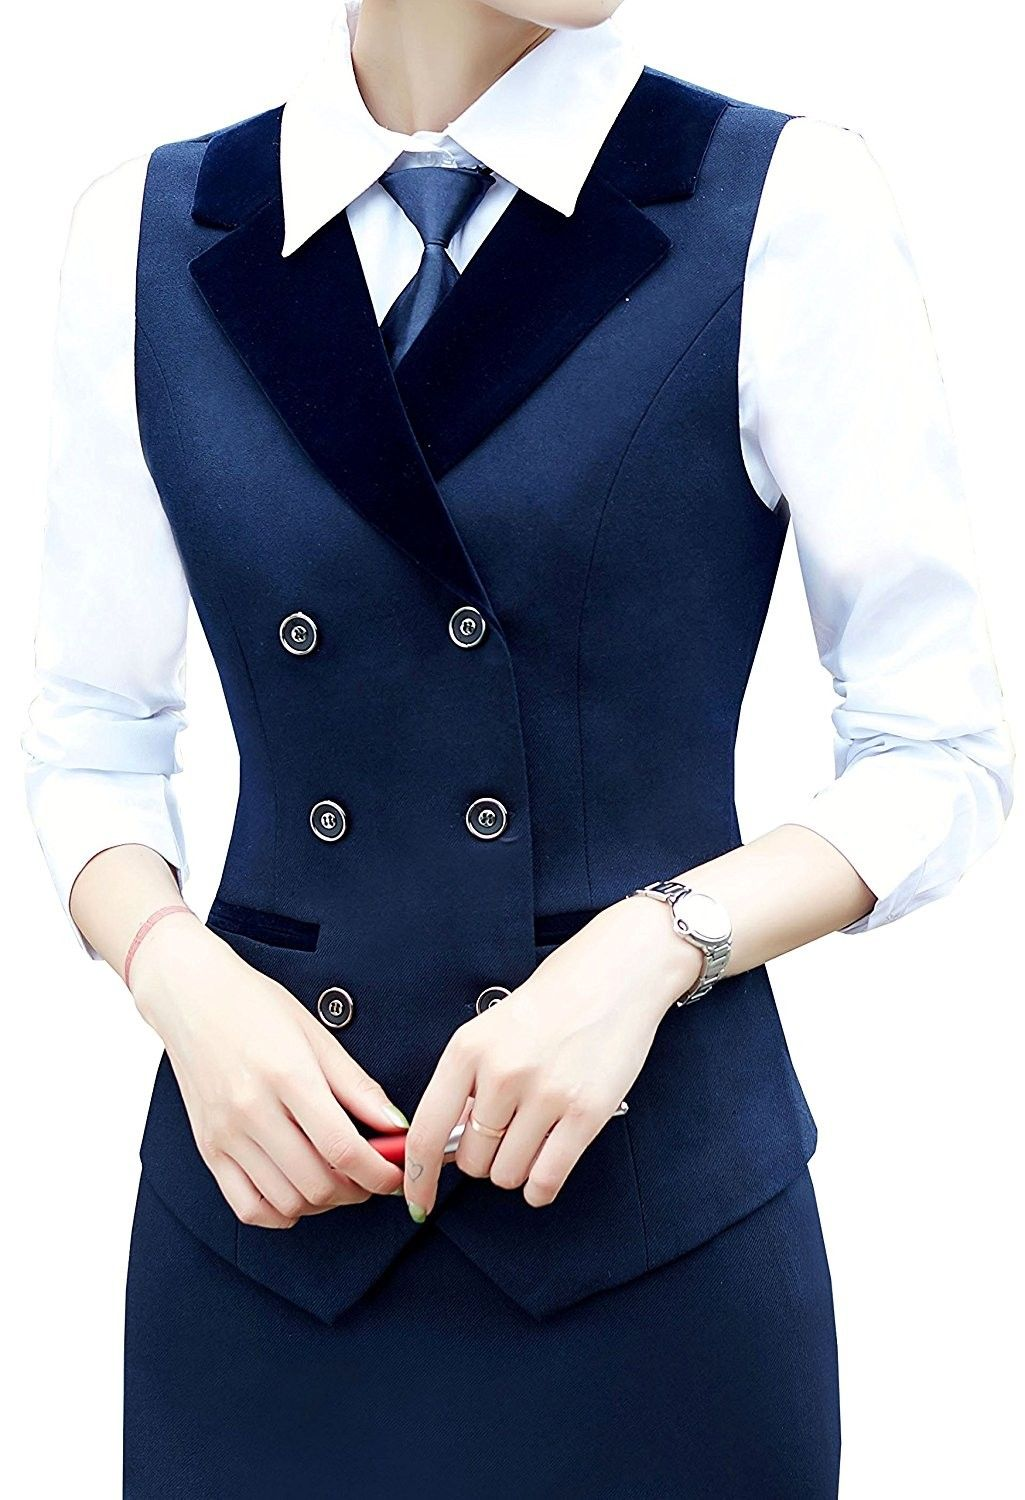 Women Breasted Lapels Slim Fit Uniform Suit Waistcoat Dressy Vest - Blue - C818639NMZO,Women's Clothing, Coats, Jackets & Vests, Vests #women #fashion #clothing #outfits #sexy #gifts #Vests #womenvest